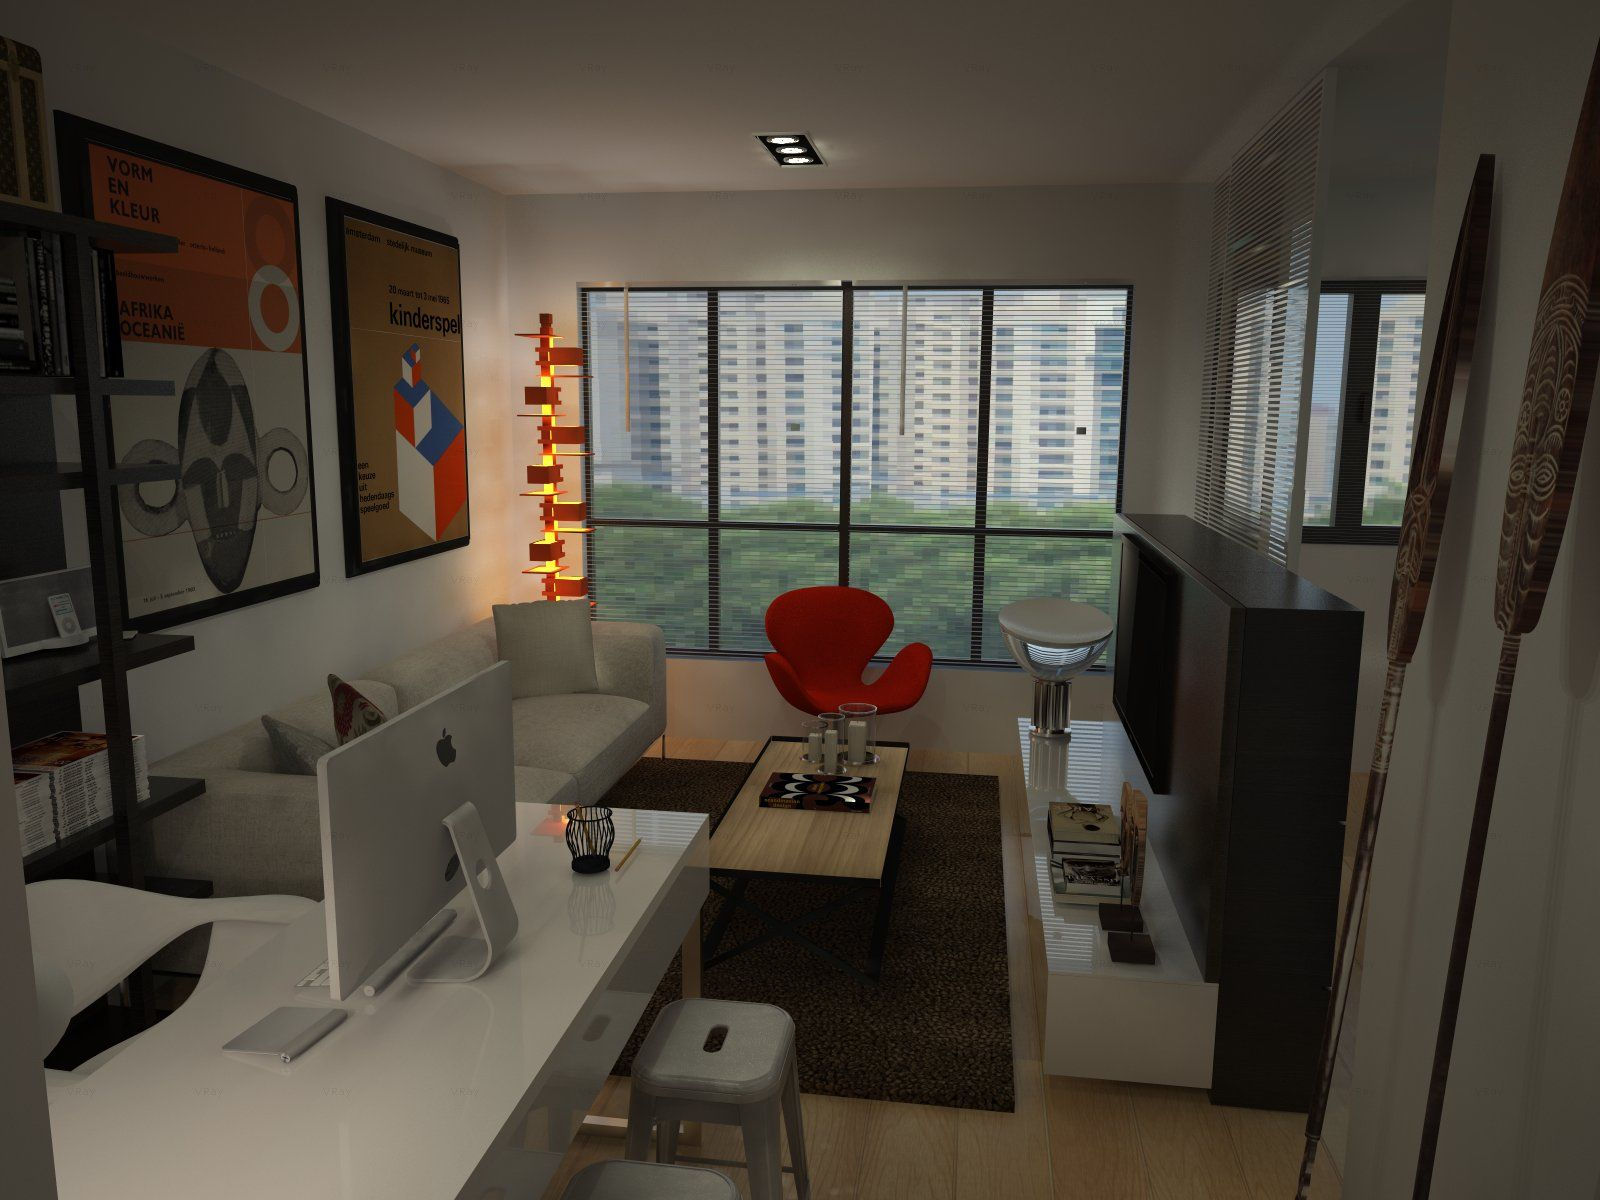 Hdb bto for singles 2 room 47sqm hdb apartment in for 2 bedroom flat decorating ideas